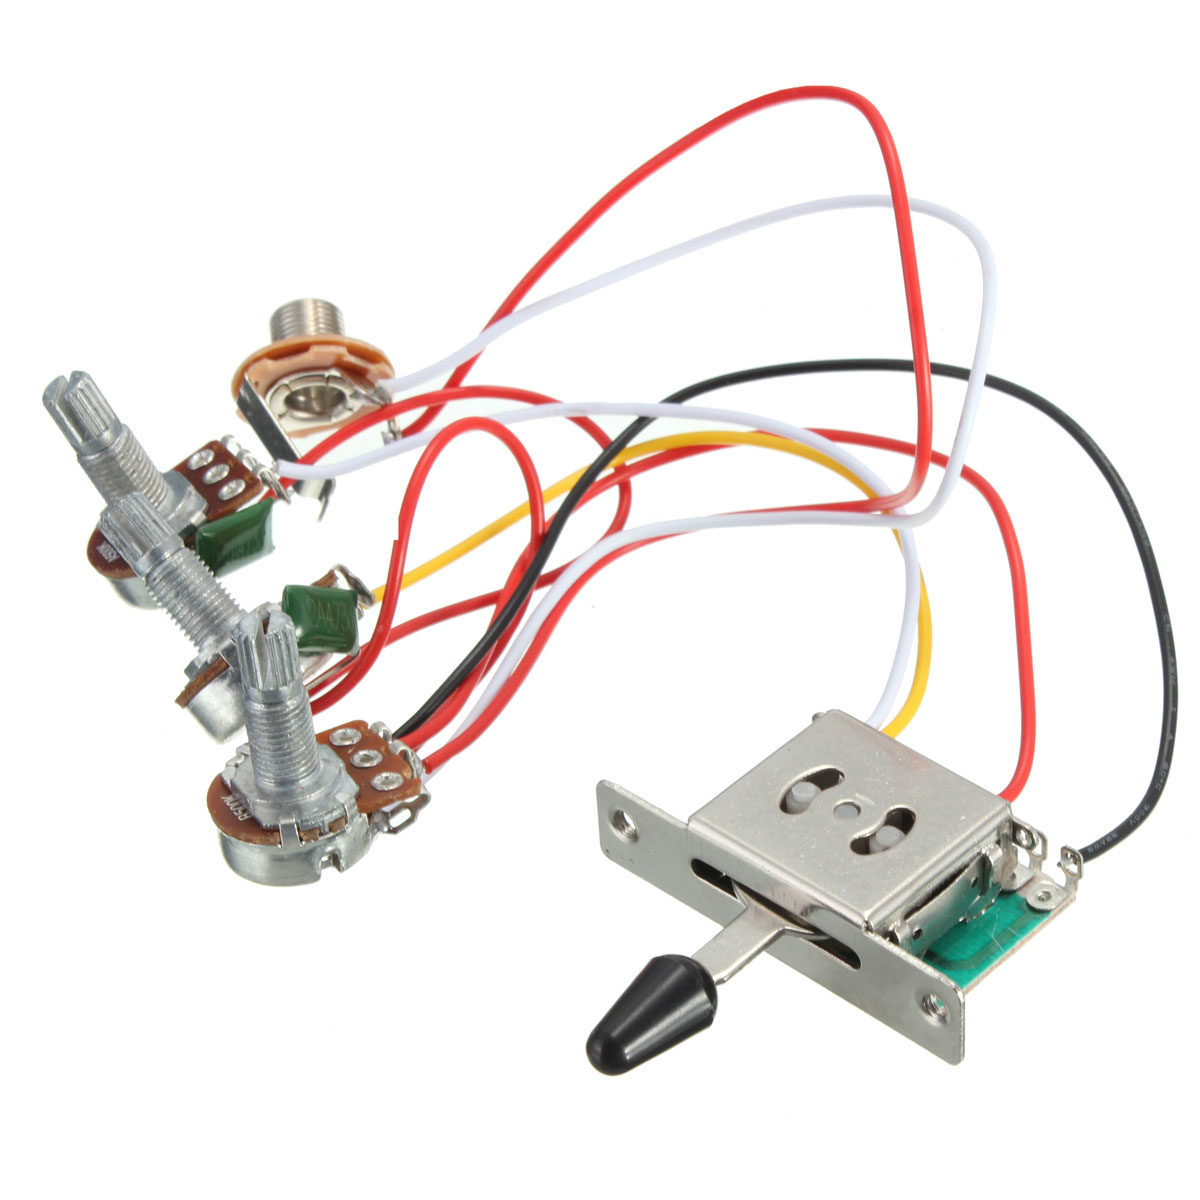 Cute How To Install A Remote Starter Thin Hss Wiring Square Excalibur Remote Start Installation 3 Way Switch Guitar Young Bulldog Remote Start Installation FreshSuper Switch Wiring 5 Way Switches   Erstine